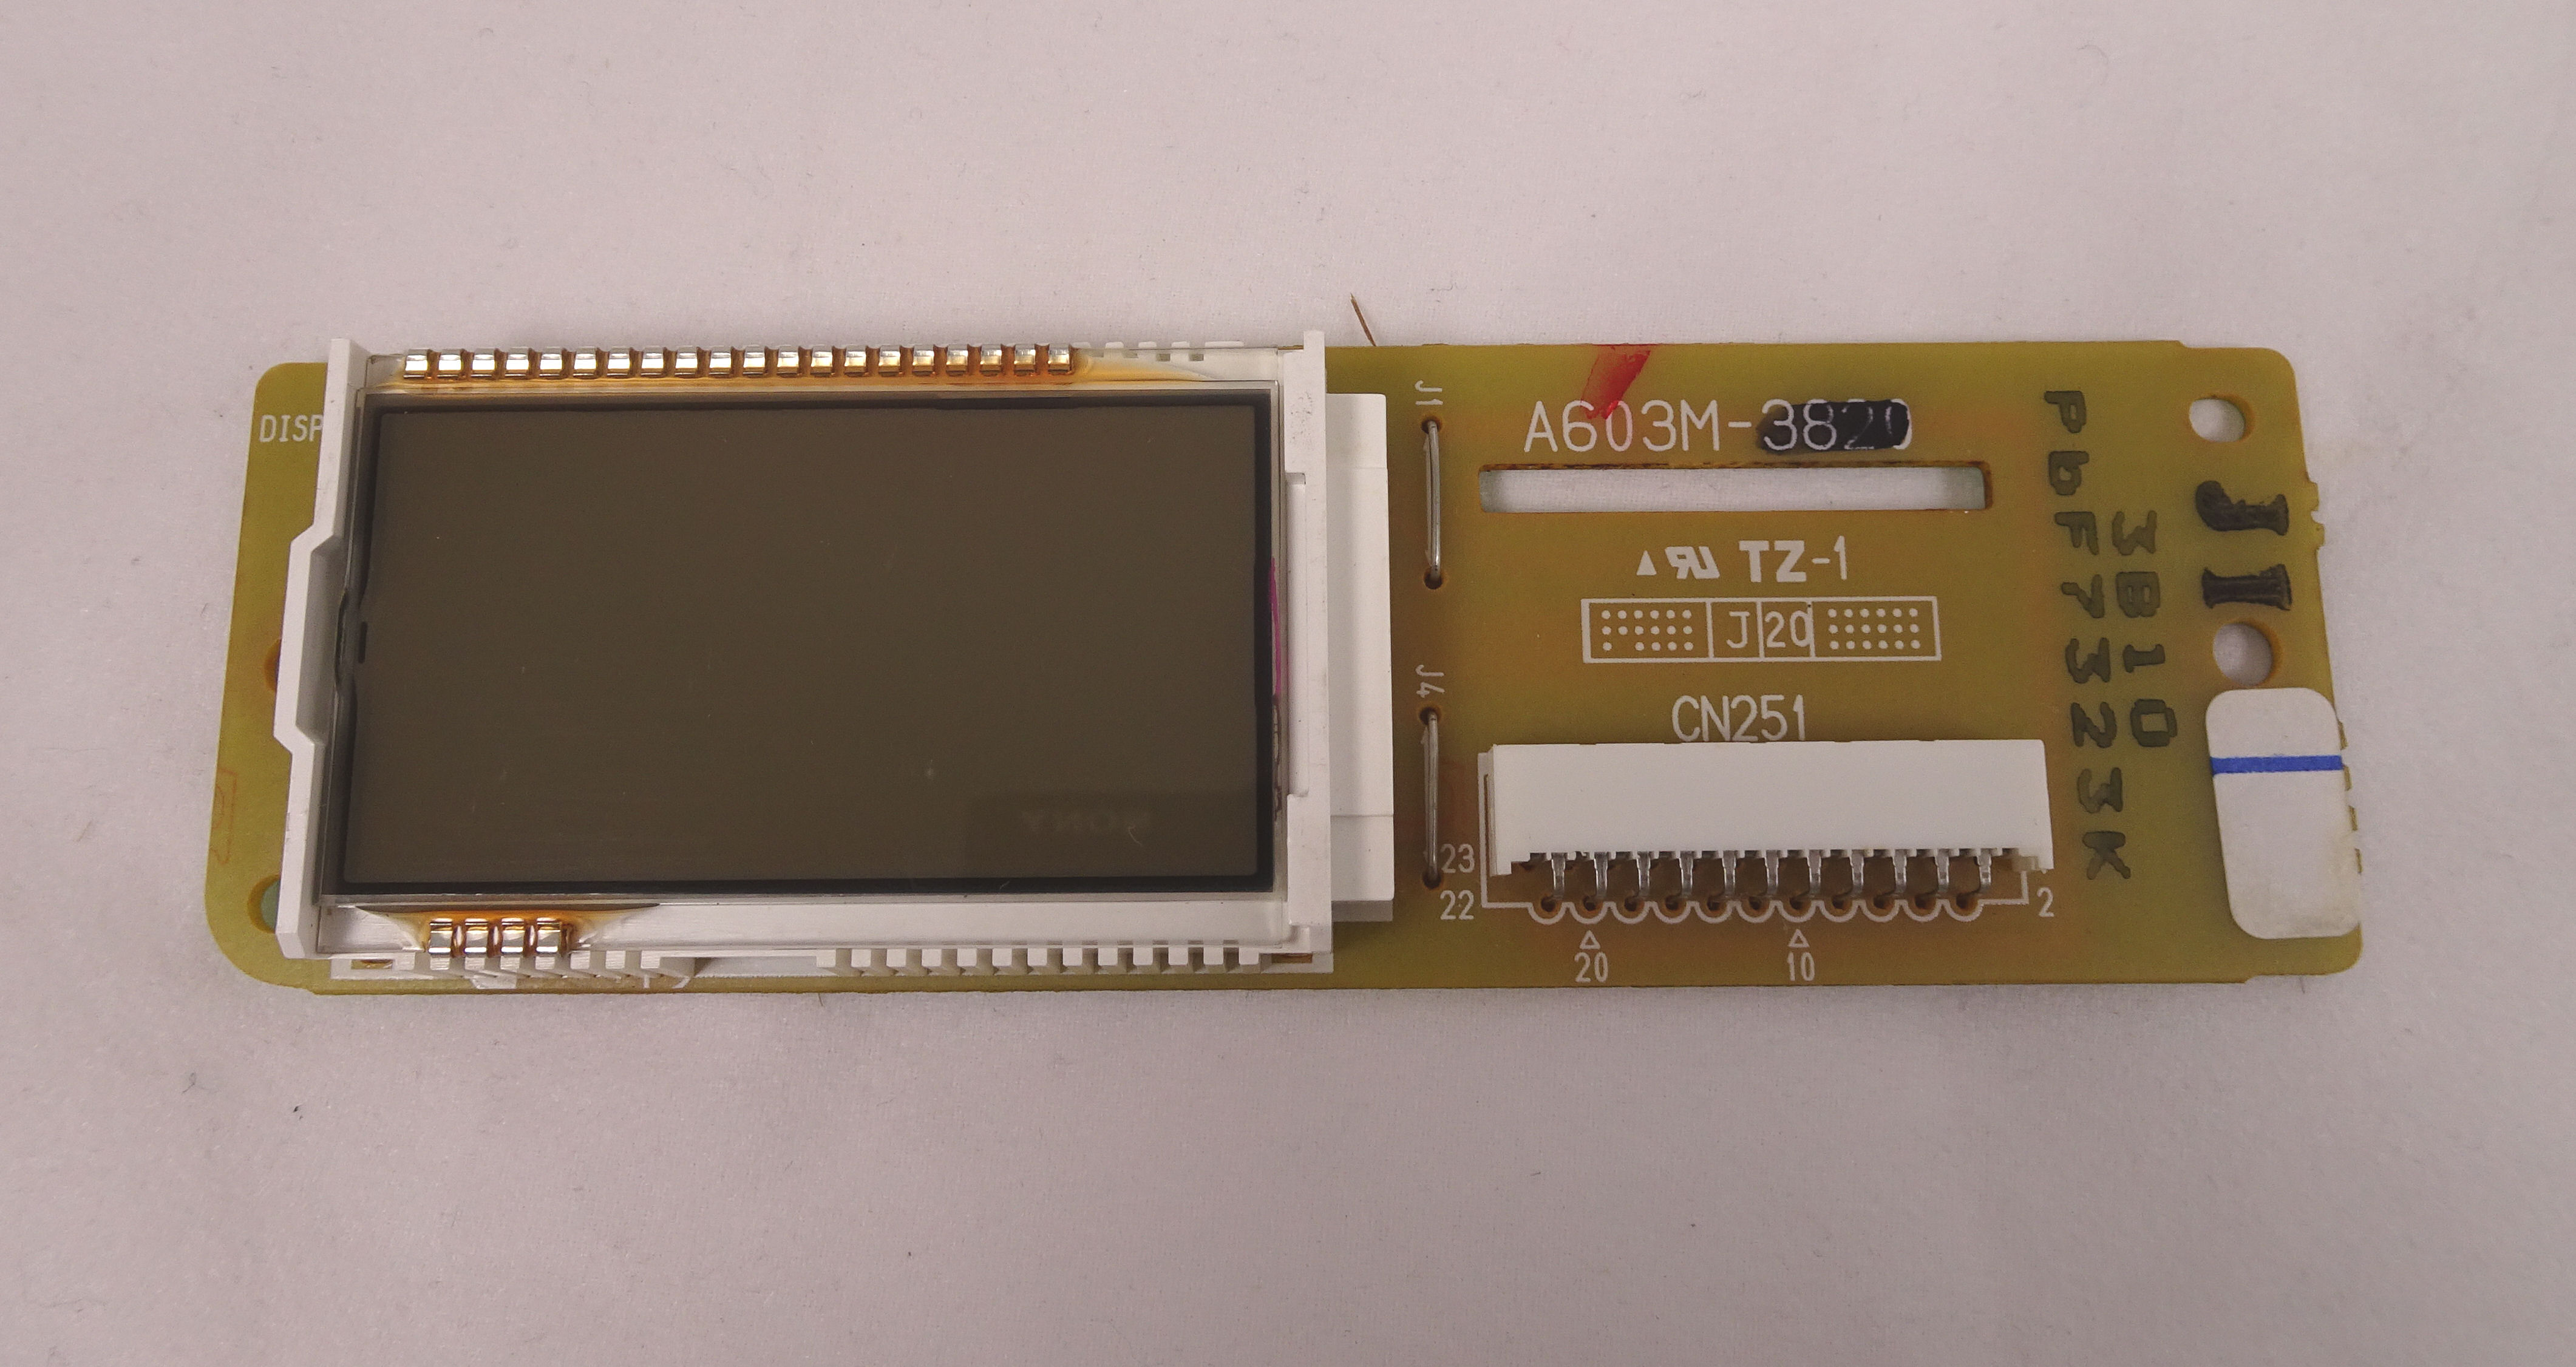 Display PCB for Panasonic commercial microwave ovens